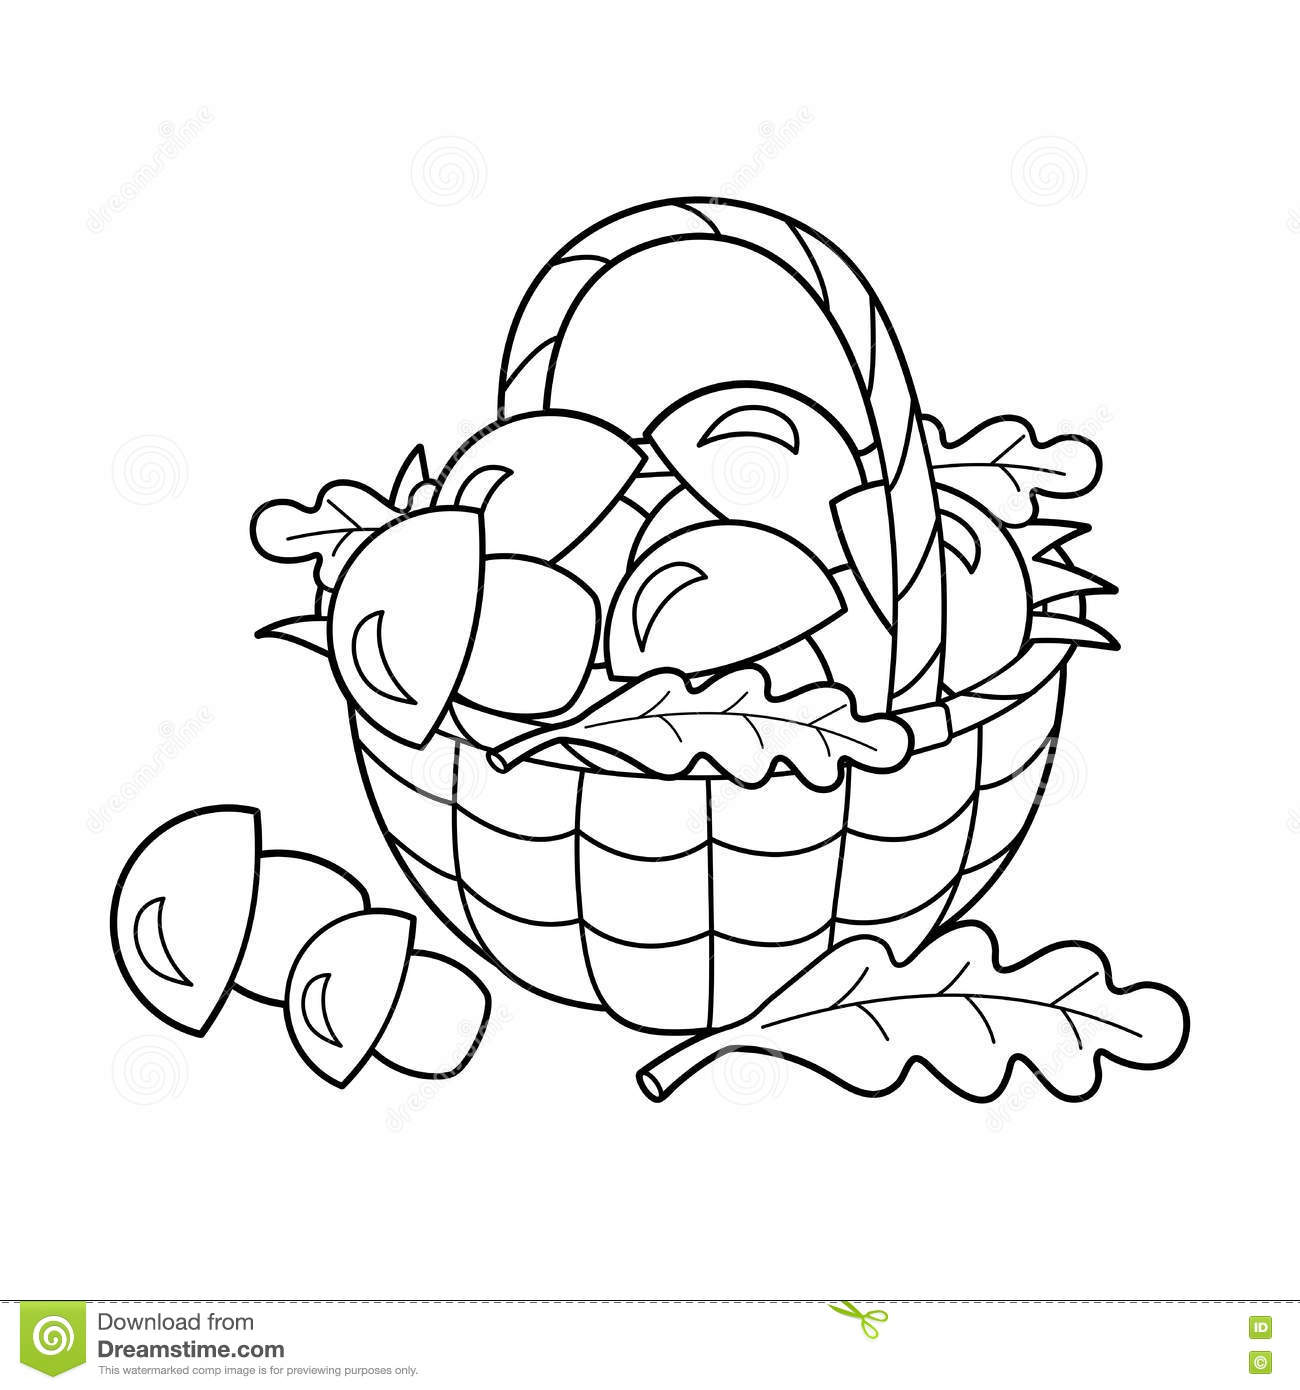 Coloring Page Outline Of Basket Of Mushrooms. Summer Gifts